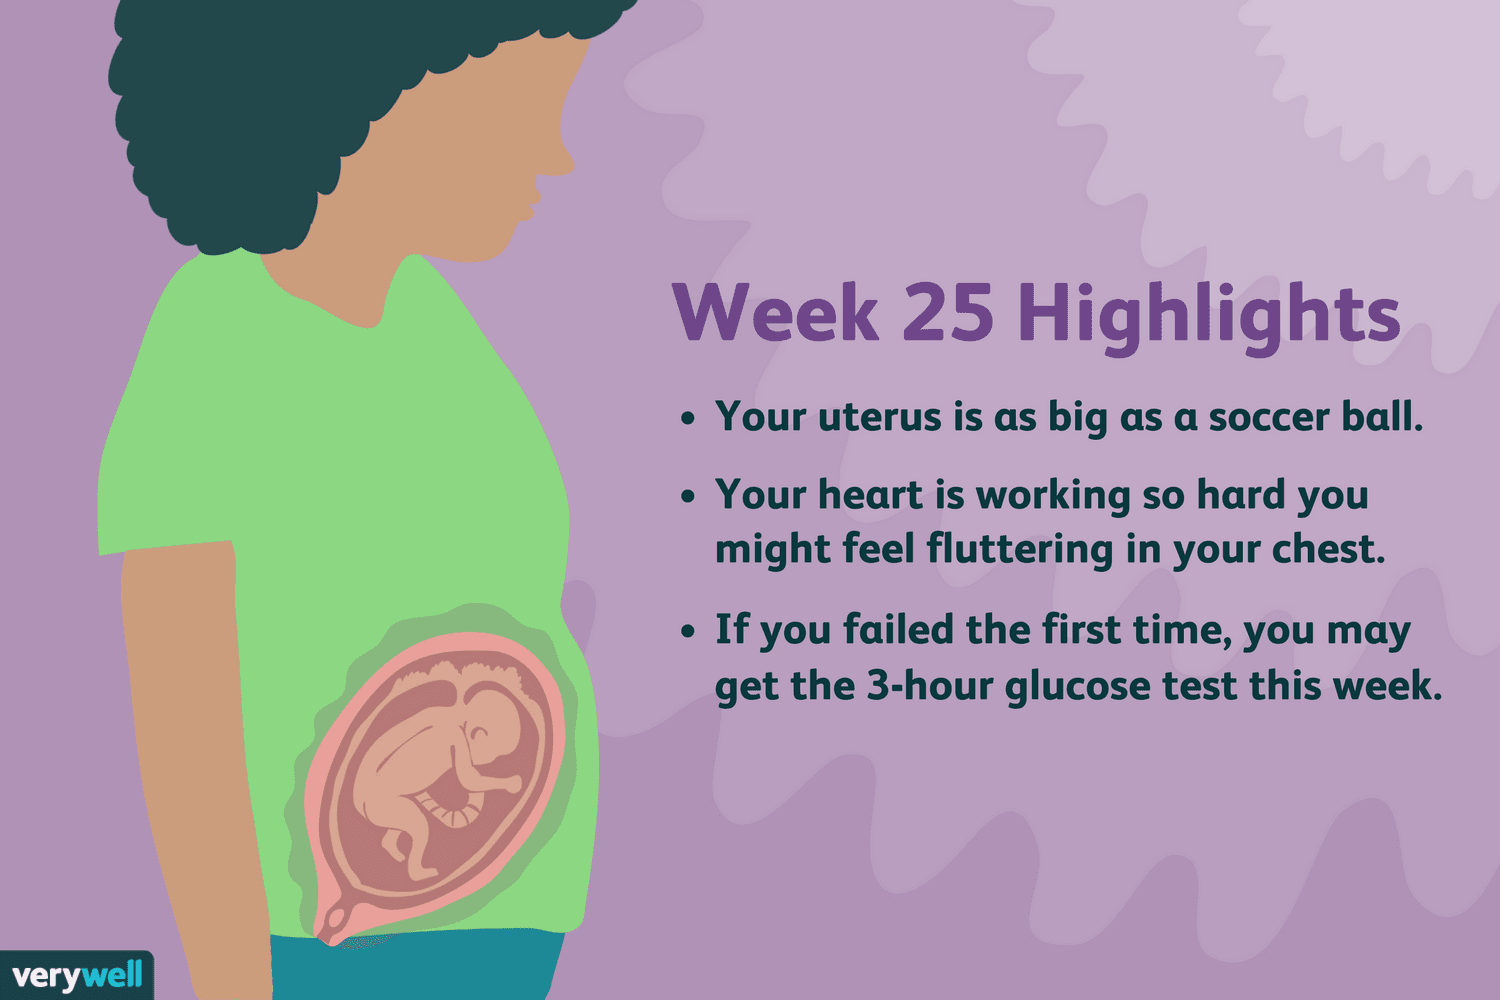 hight resolution of week 25 pregnancy highlights illustration by verywell